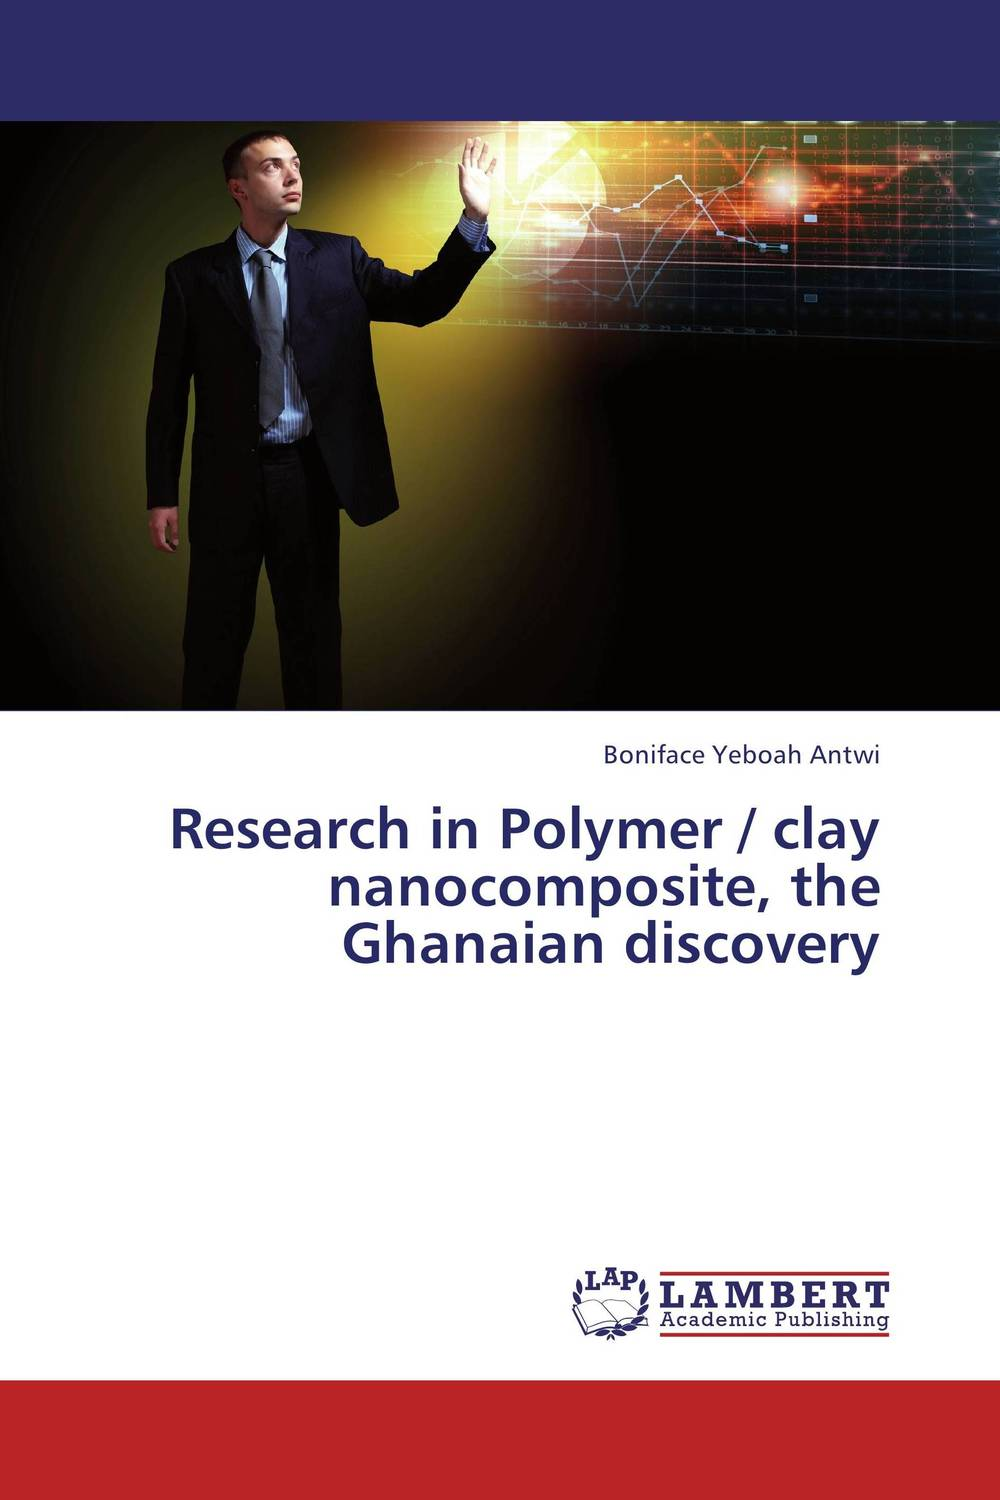 Research in Polymer / clay nanocomposite, the Ghanaian discovery wound healing properties of some indigenous ghanaian plants